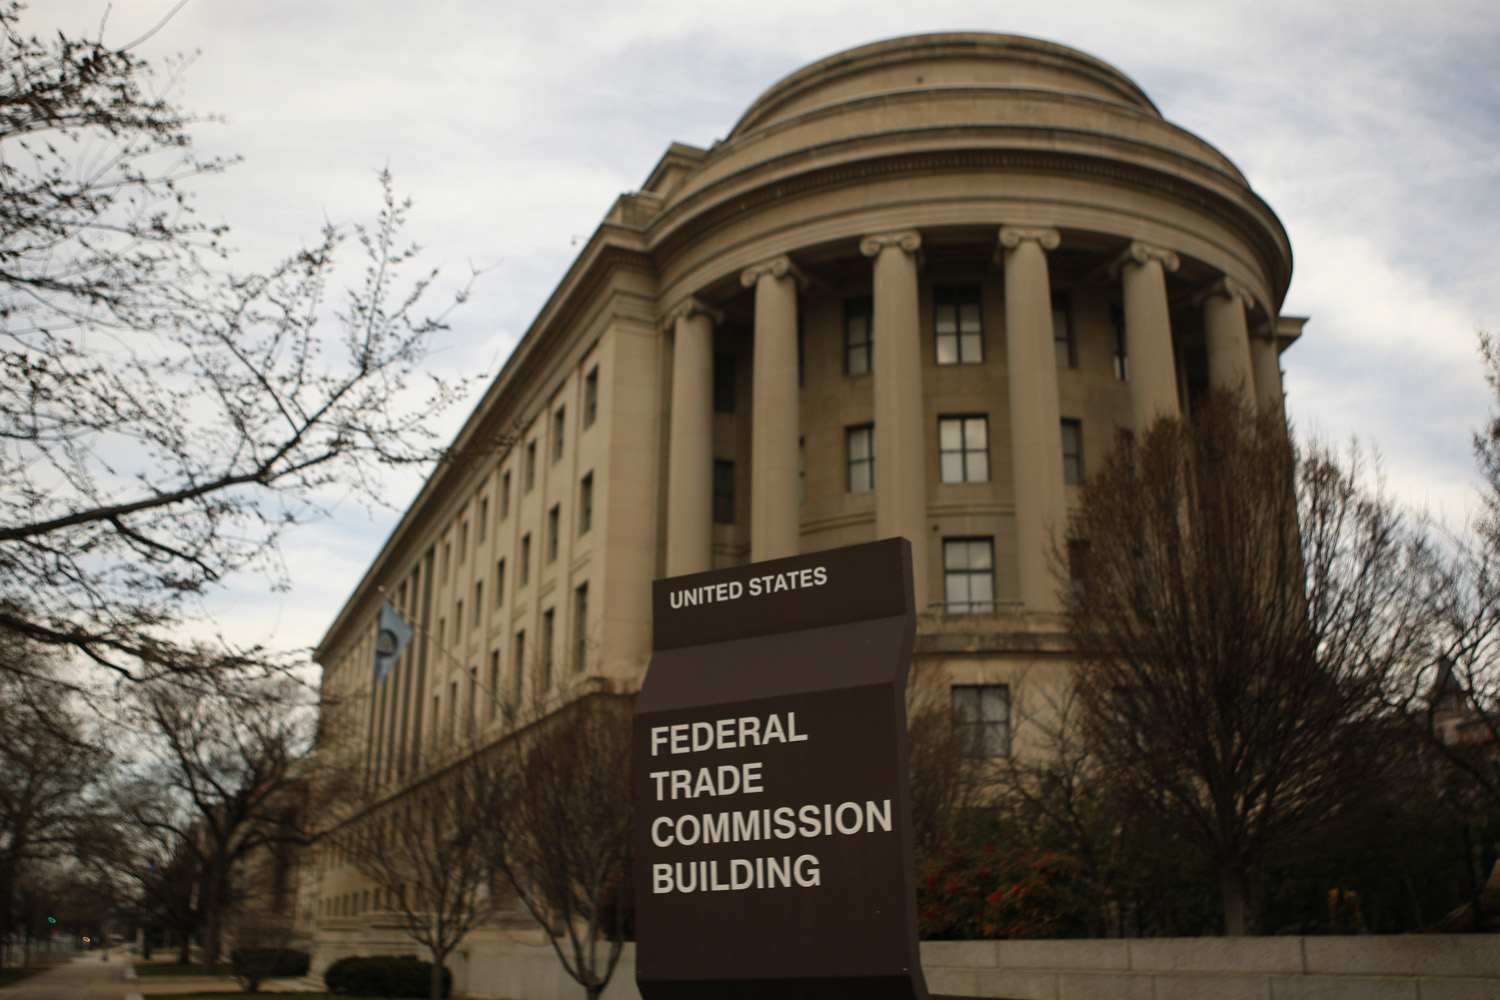 The Federal Trade Commission building in Washington D.C. The agency slammed a data broker for labeling job applicants as sex offenders this week.